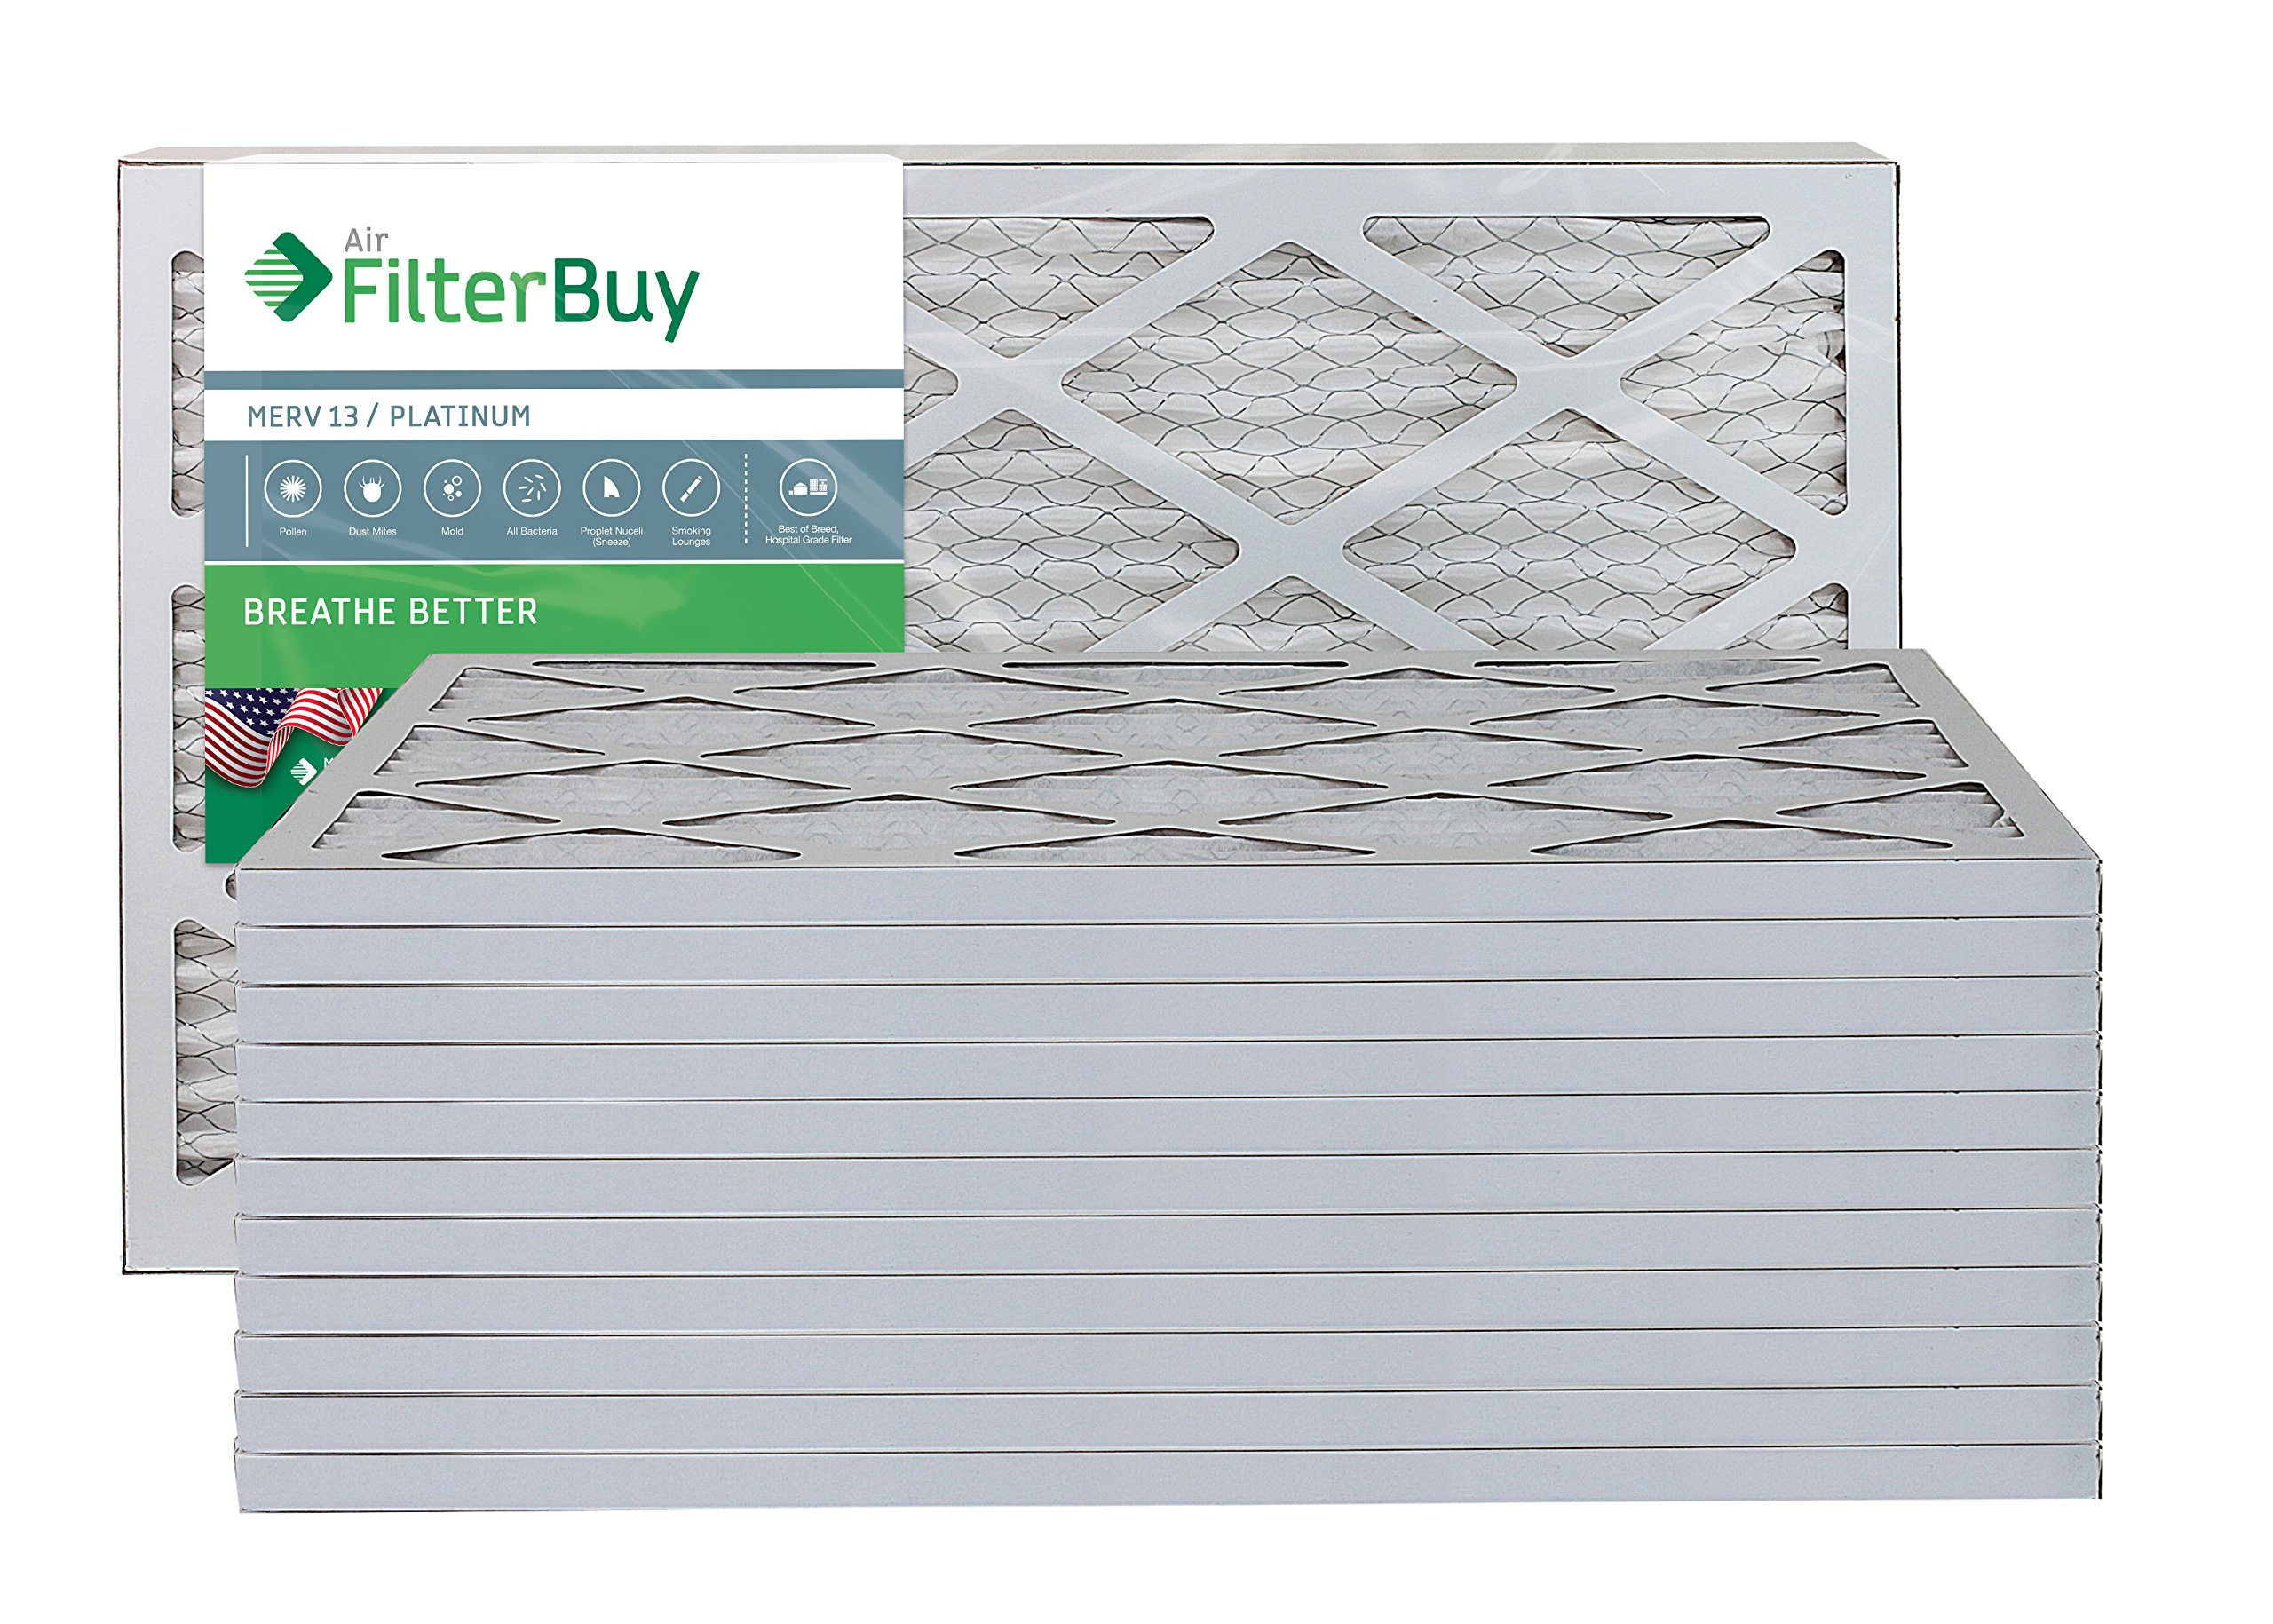 AFB Platinum MERV 13 16x20x1 Pleated AC Furnace Air Filter. Pack of 12 Filters. 100% produced in the USA. by FilterBuy